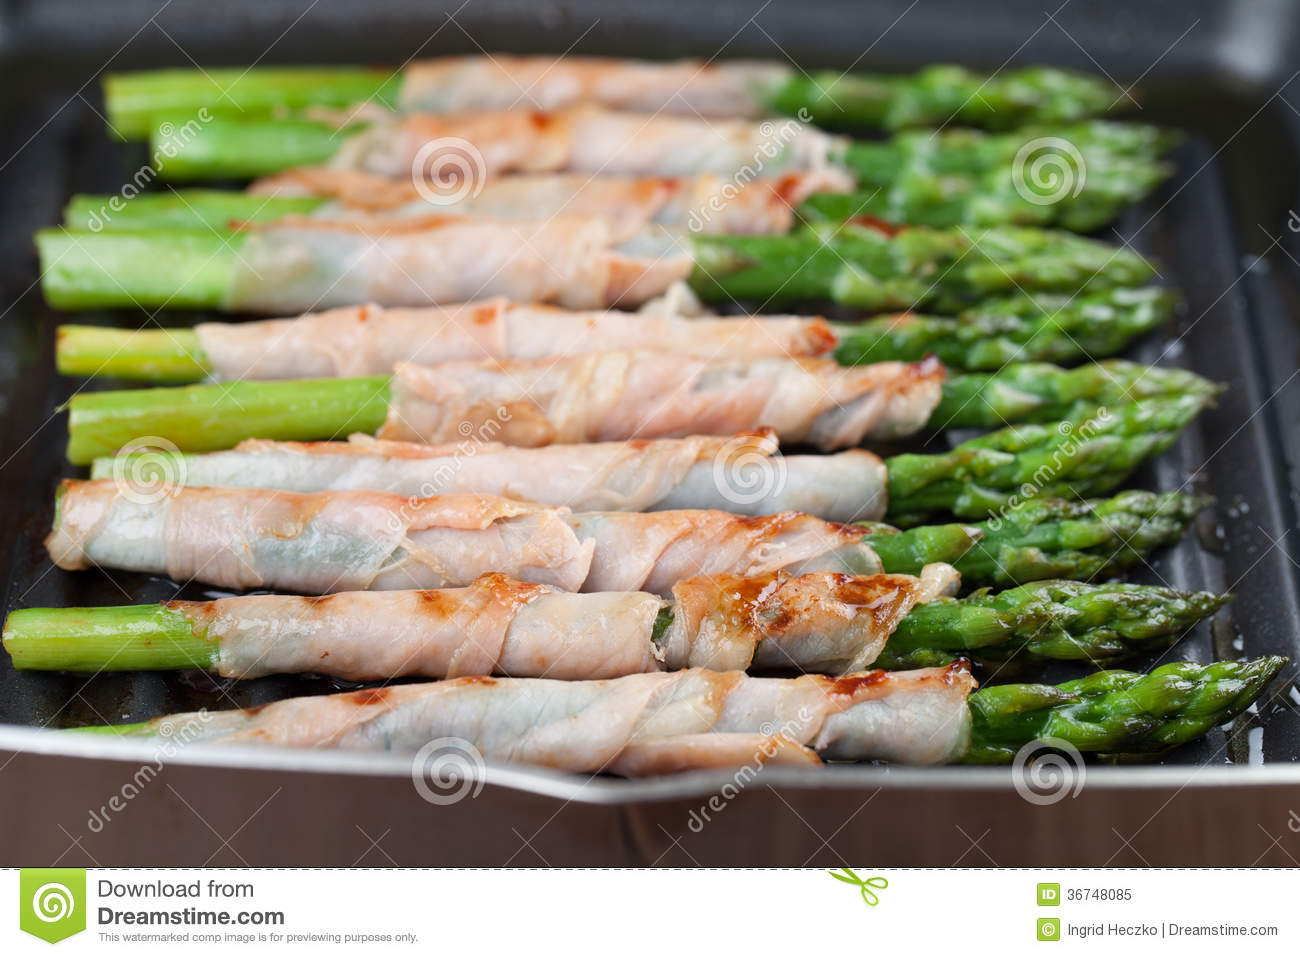 Prosciutto wrapped green asparagus on a grilling pan.